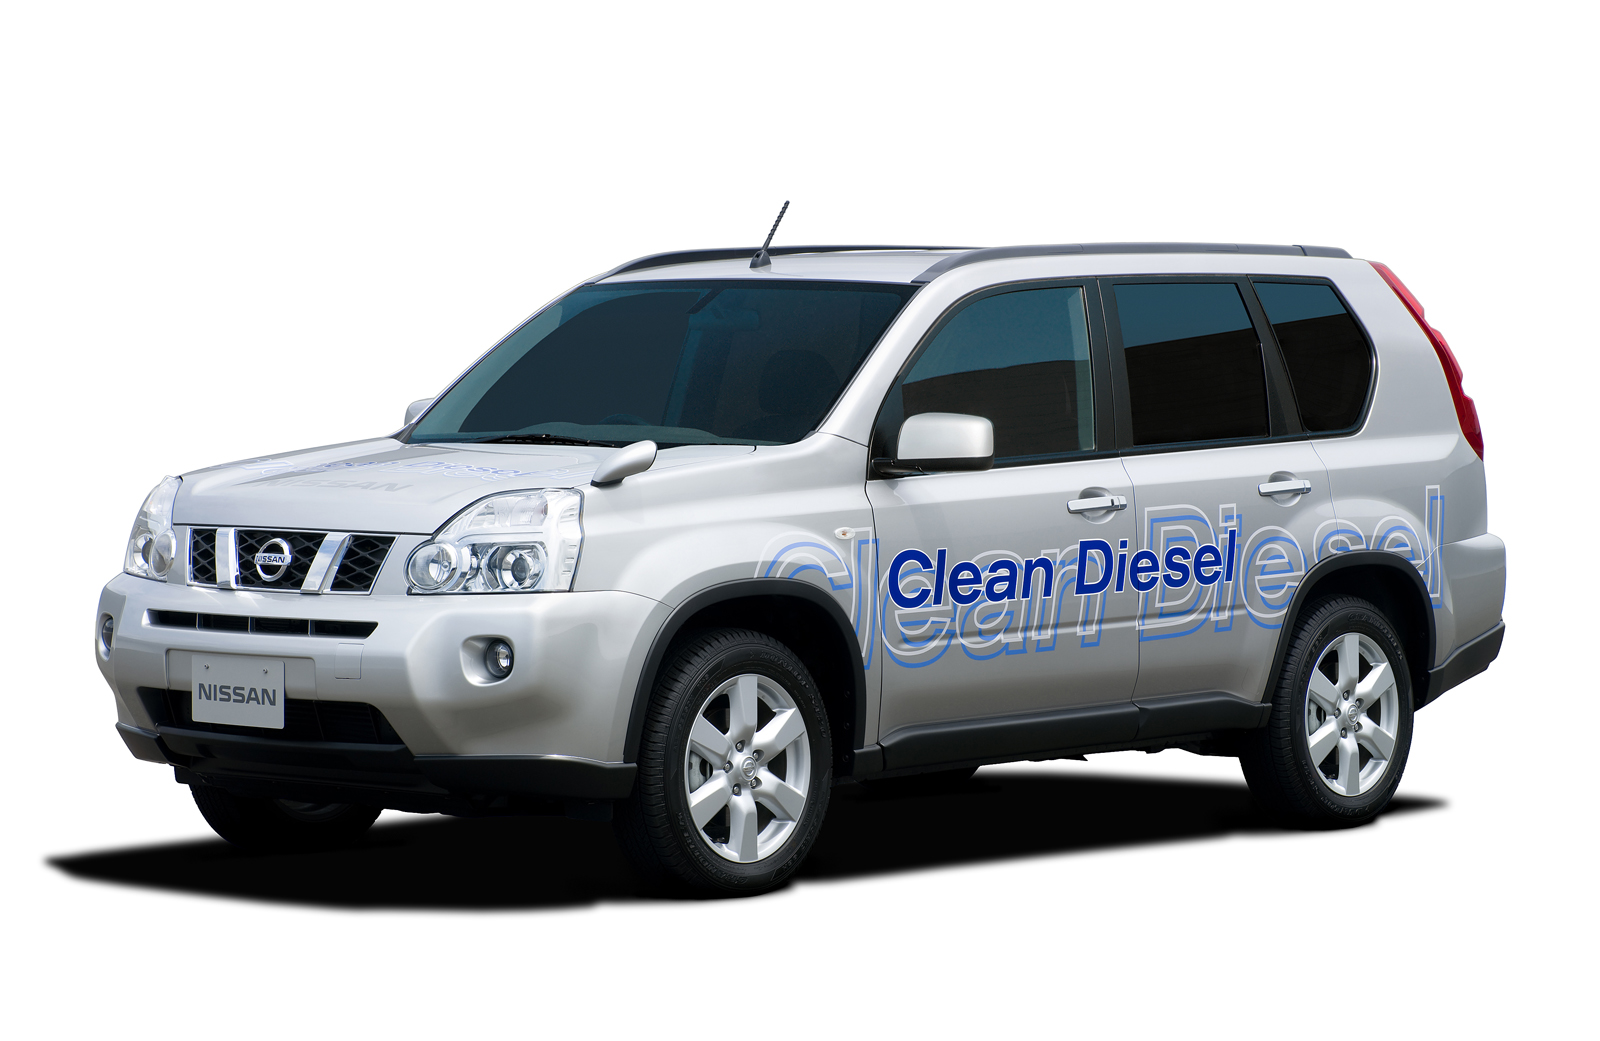 nissan to showcase x trail diesel prototype at 2008 g8 summit. Black Bedroom Furniture Sets. Home Design Ideas